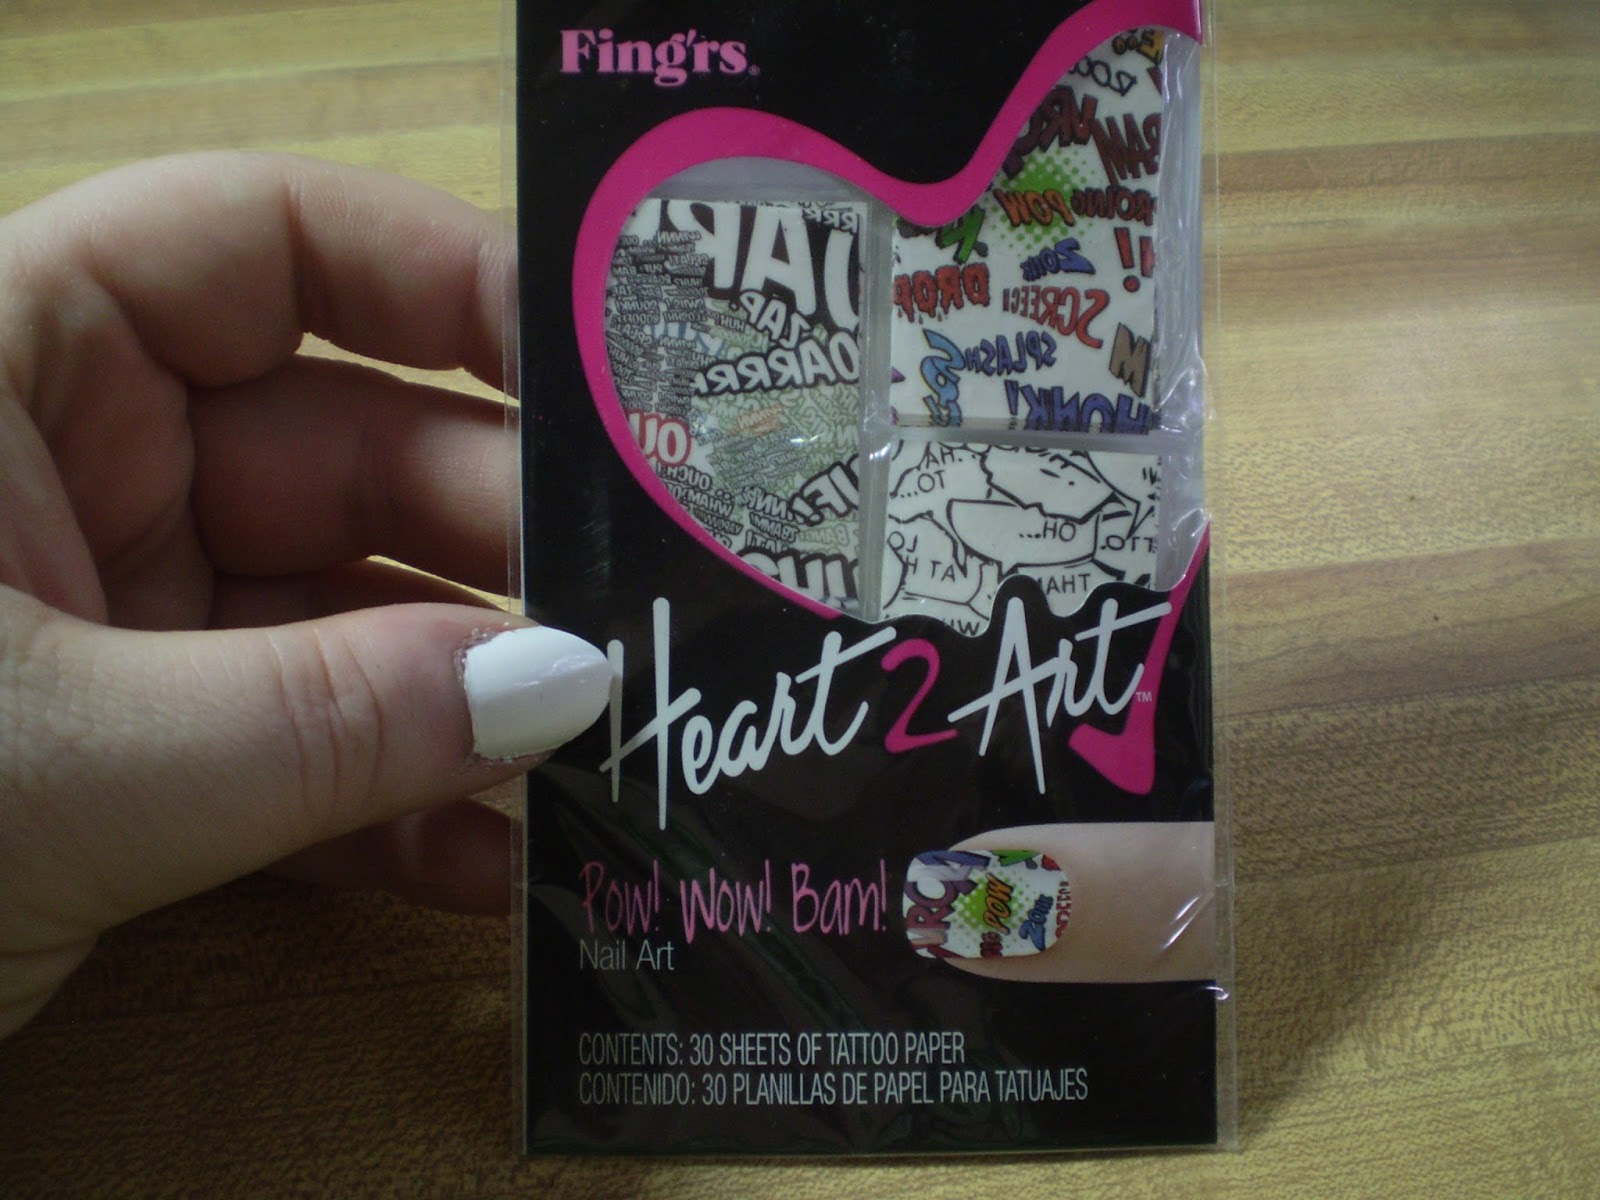 Heart 2 art nail tattoos